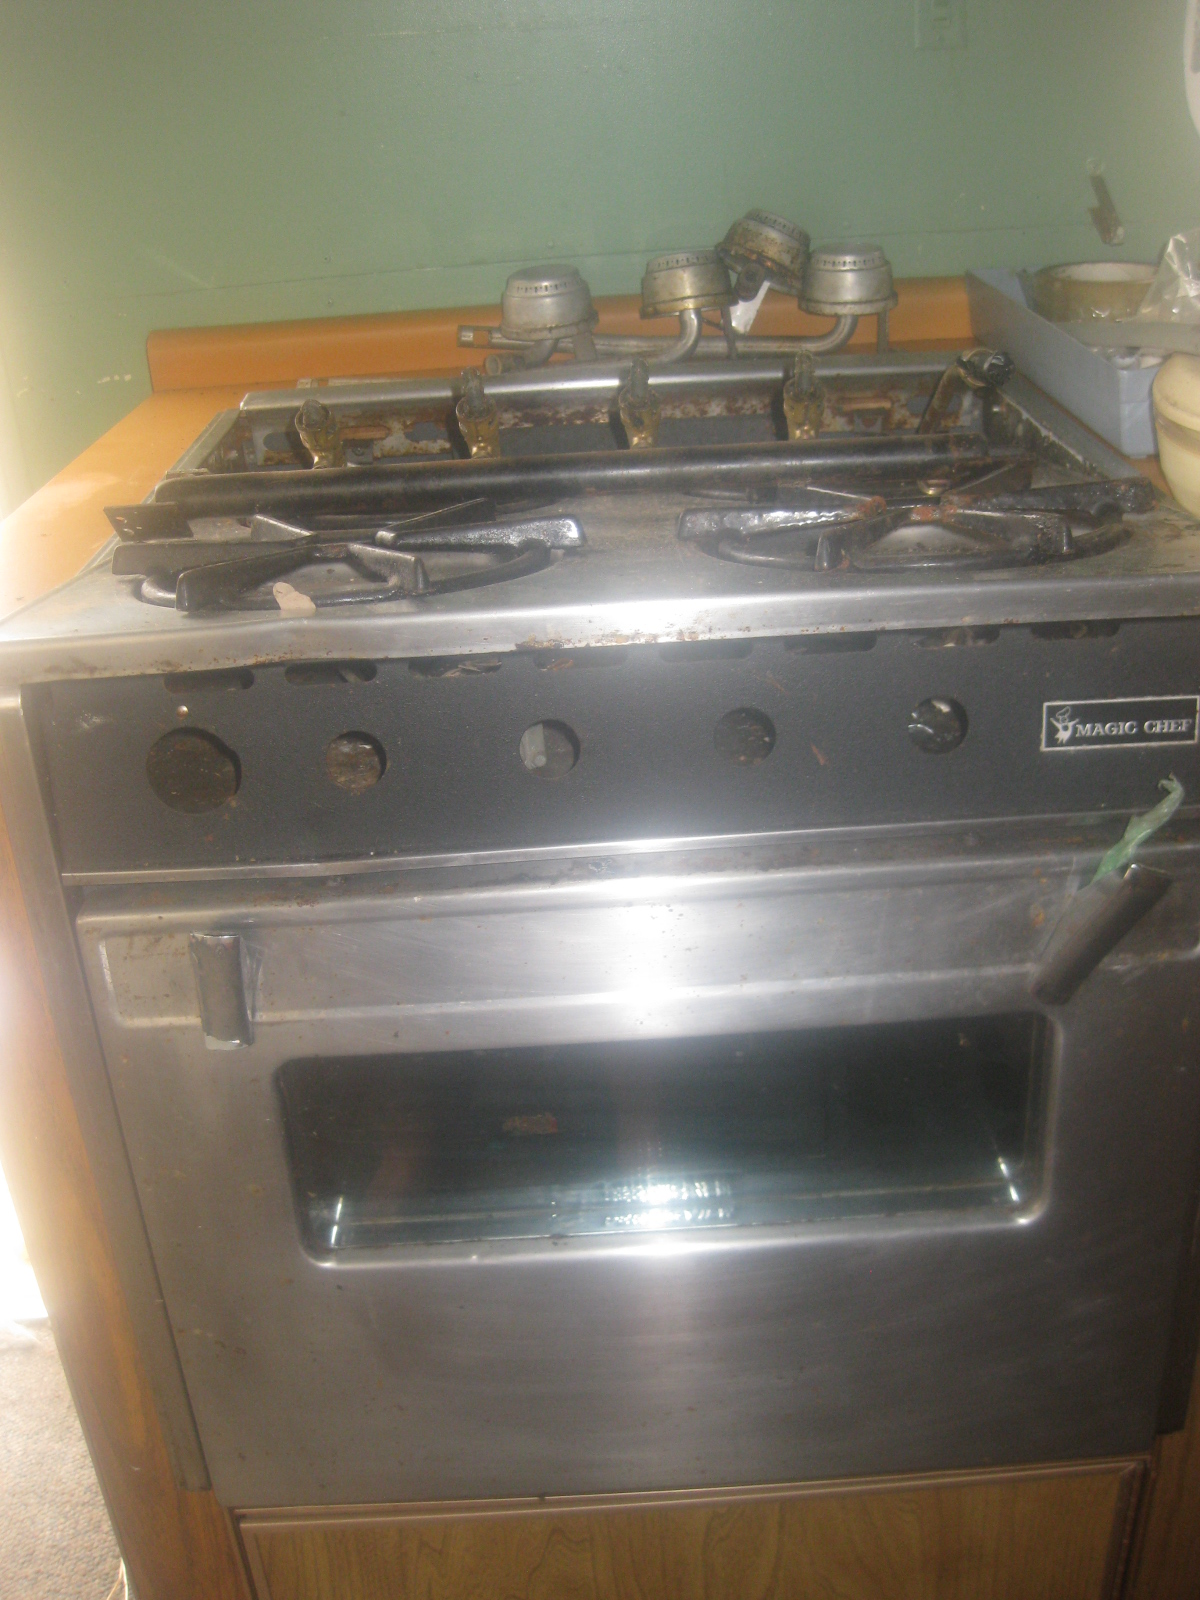 Click image for larger version  Name:Magic Chef 4 Burner Oven.JPG Views:513 Size:786.4 KB ID:131760